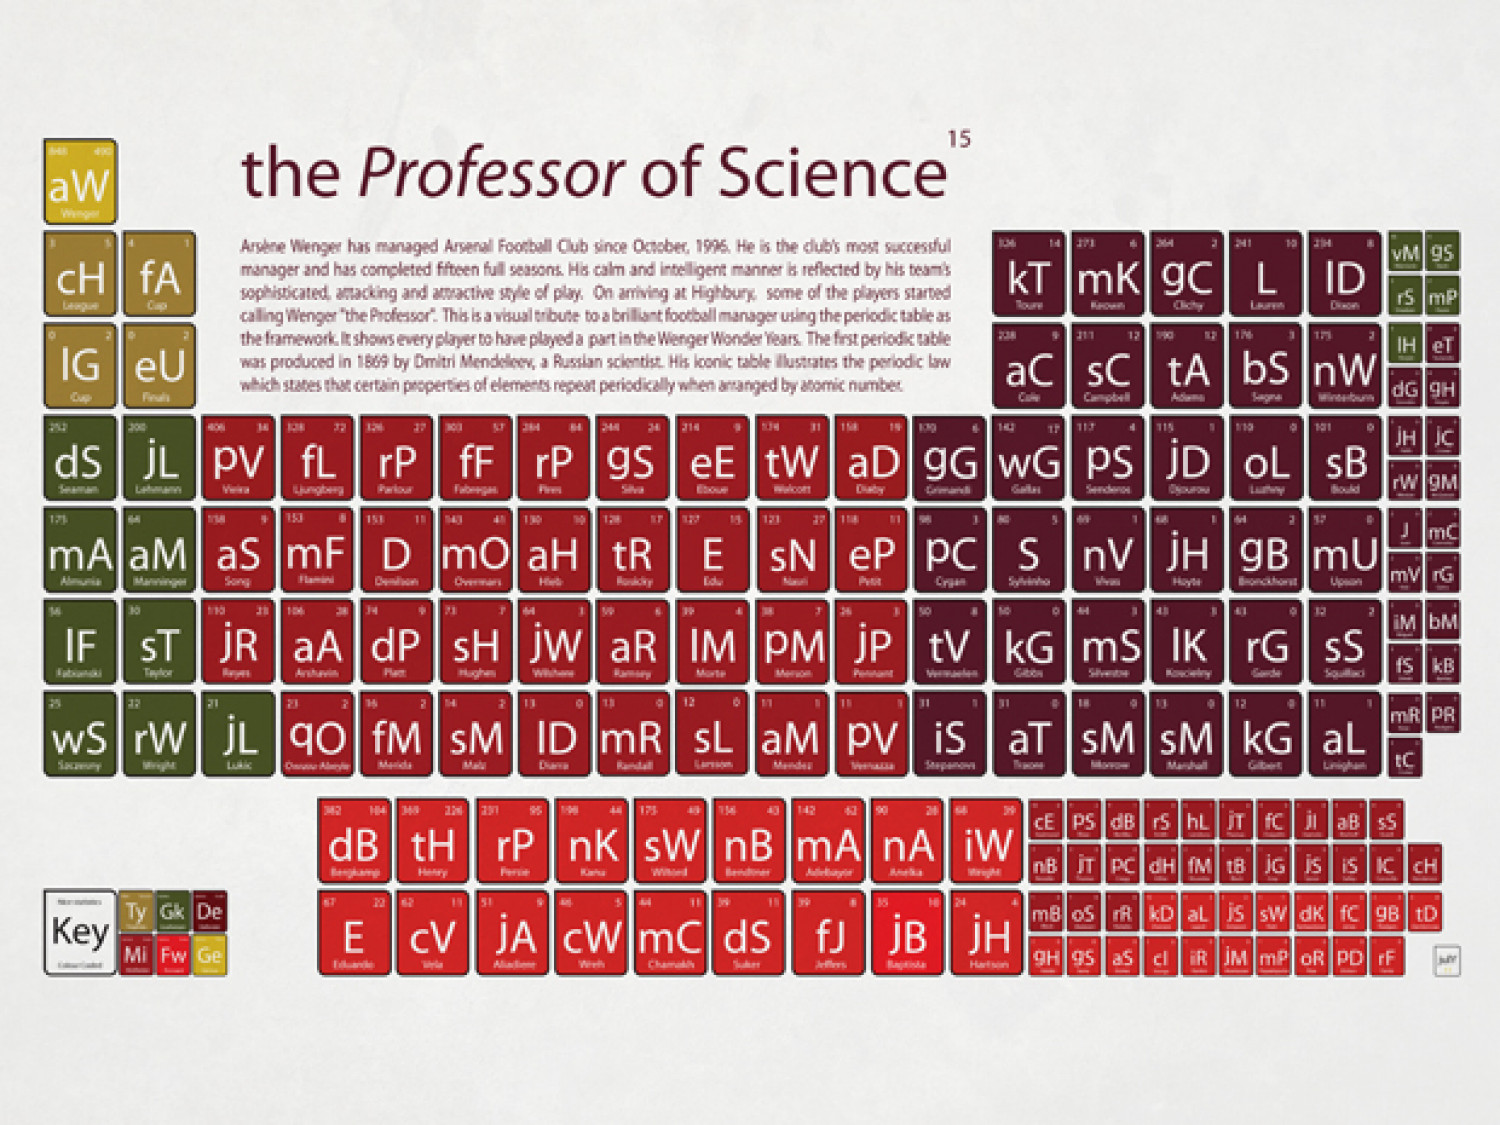 the Professor of Science Infographic